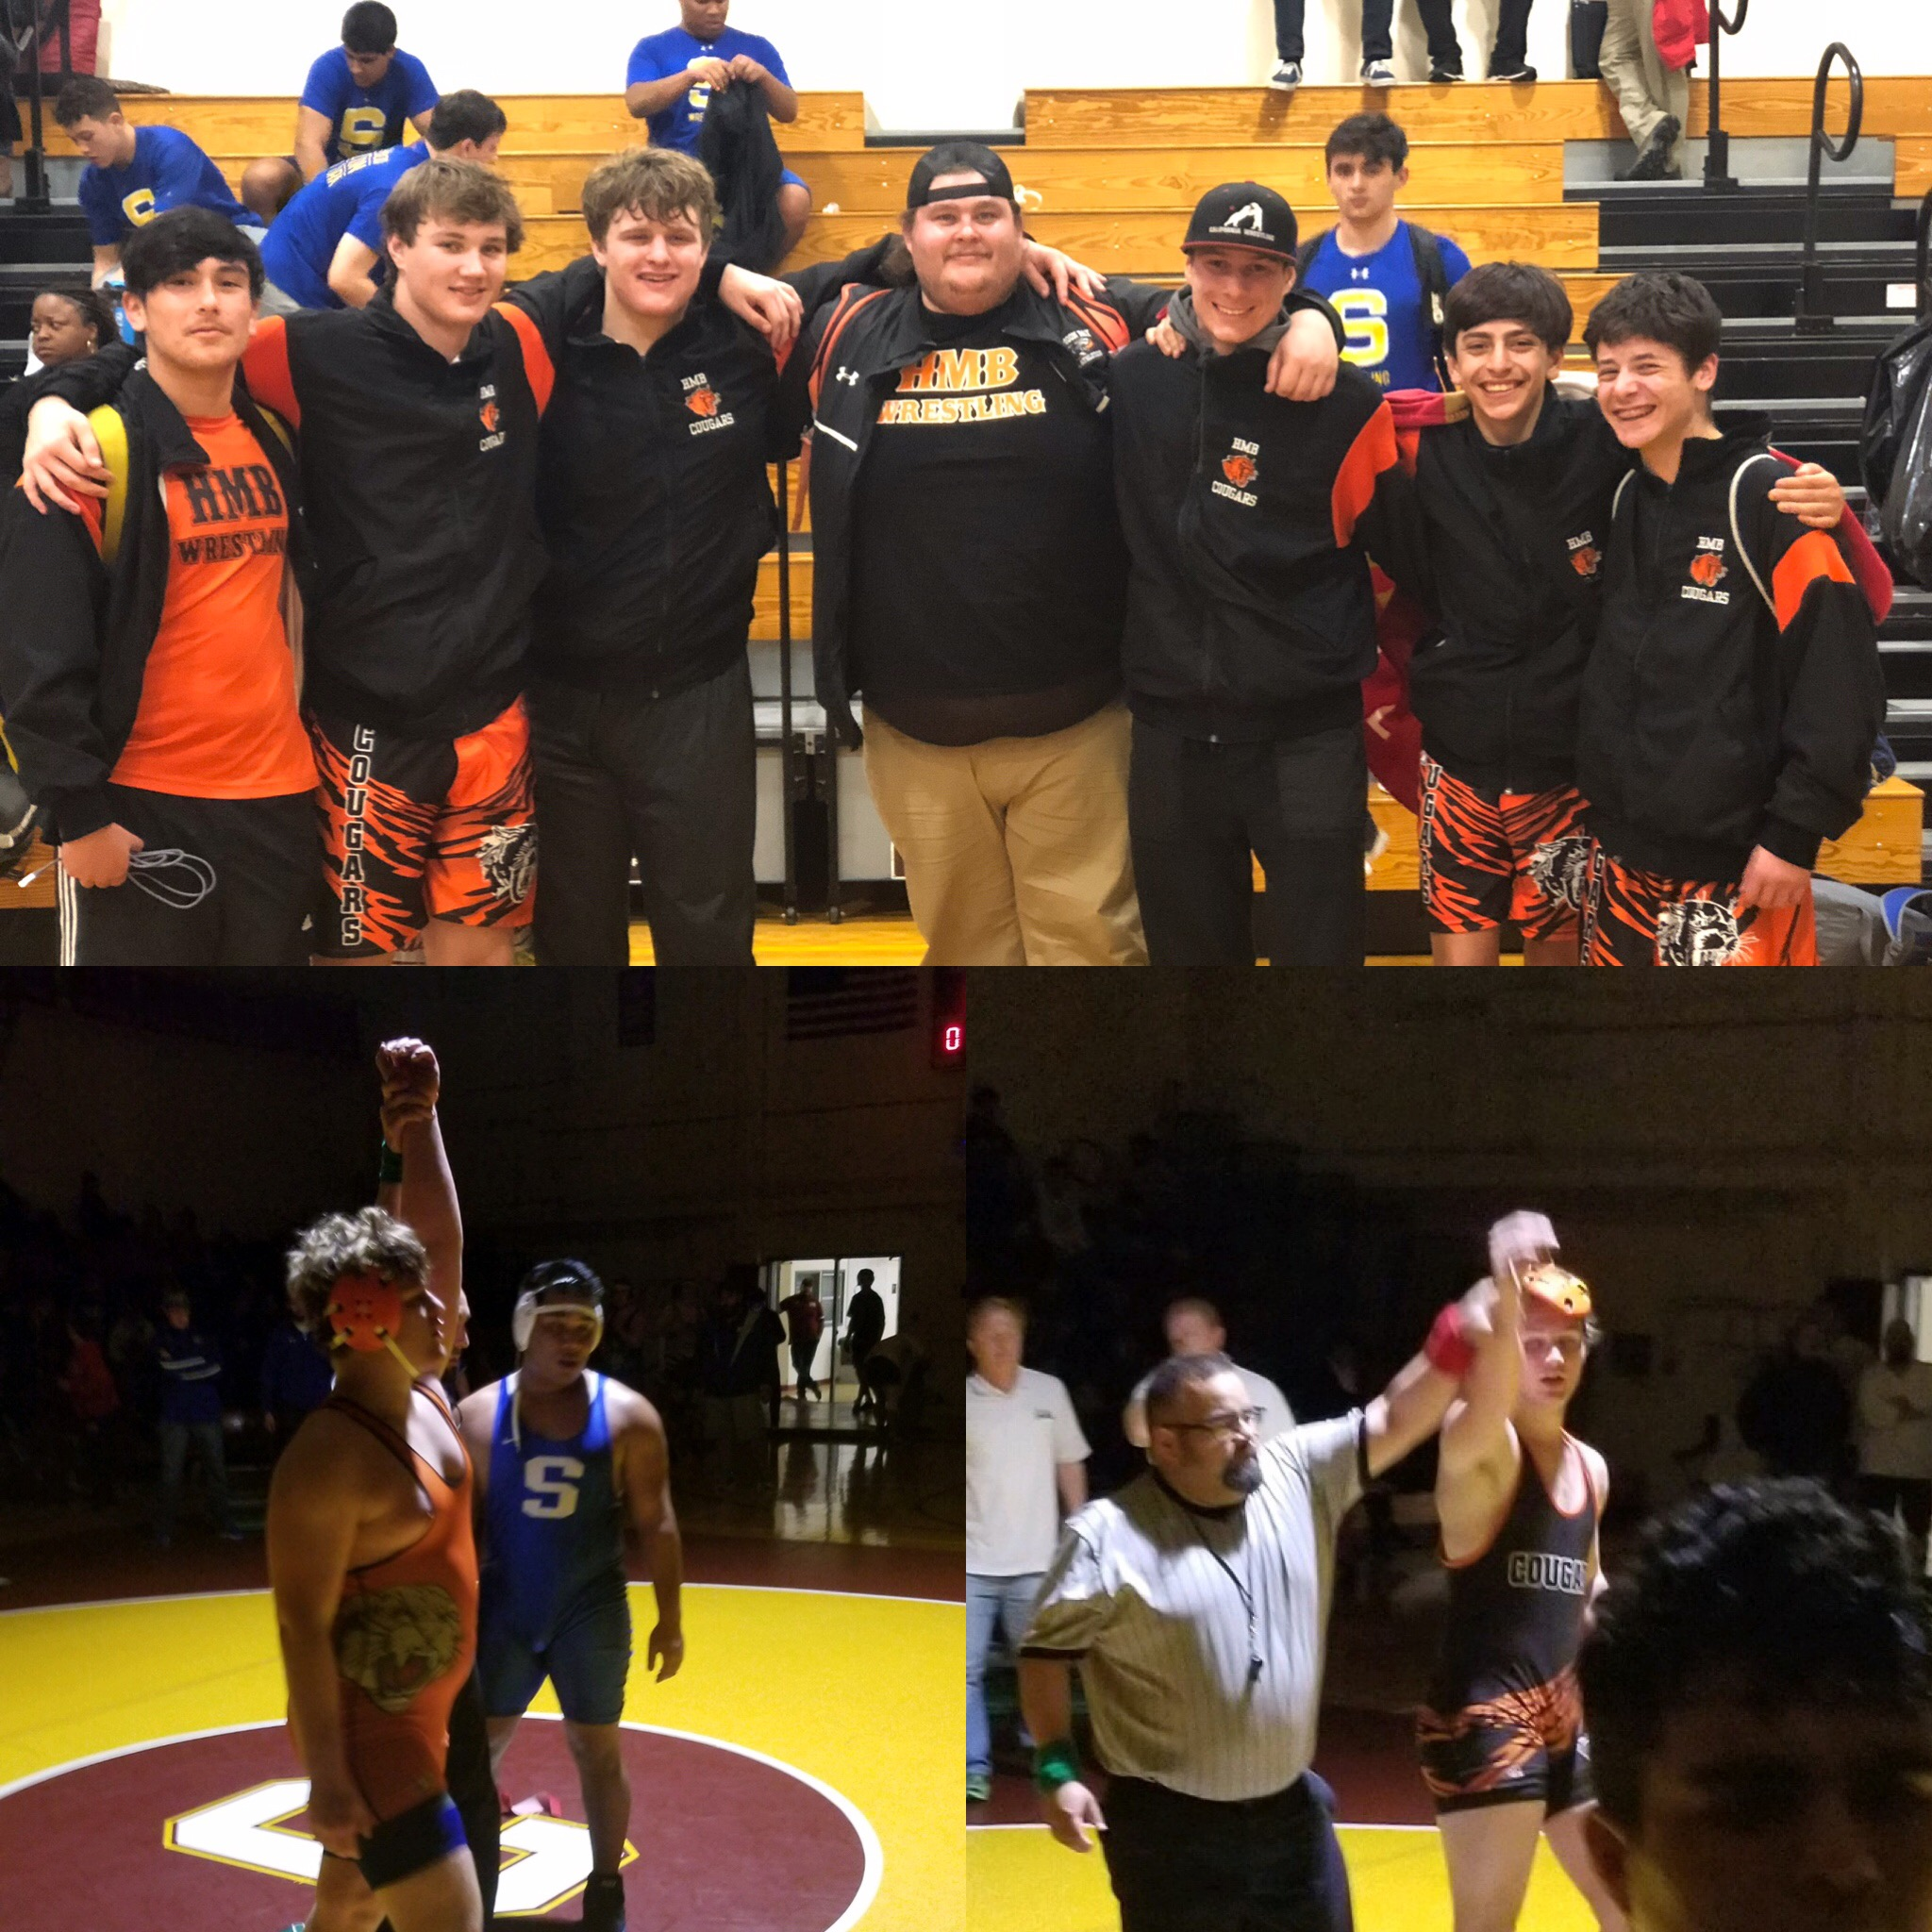 HMB Wrestlers Grabowski and Duncan Capture 1st Place  at Cupertino Wrestling Tournament